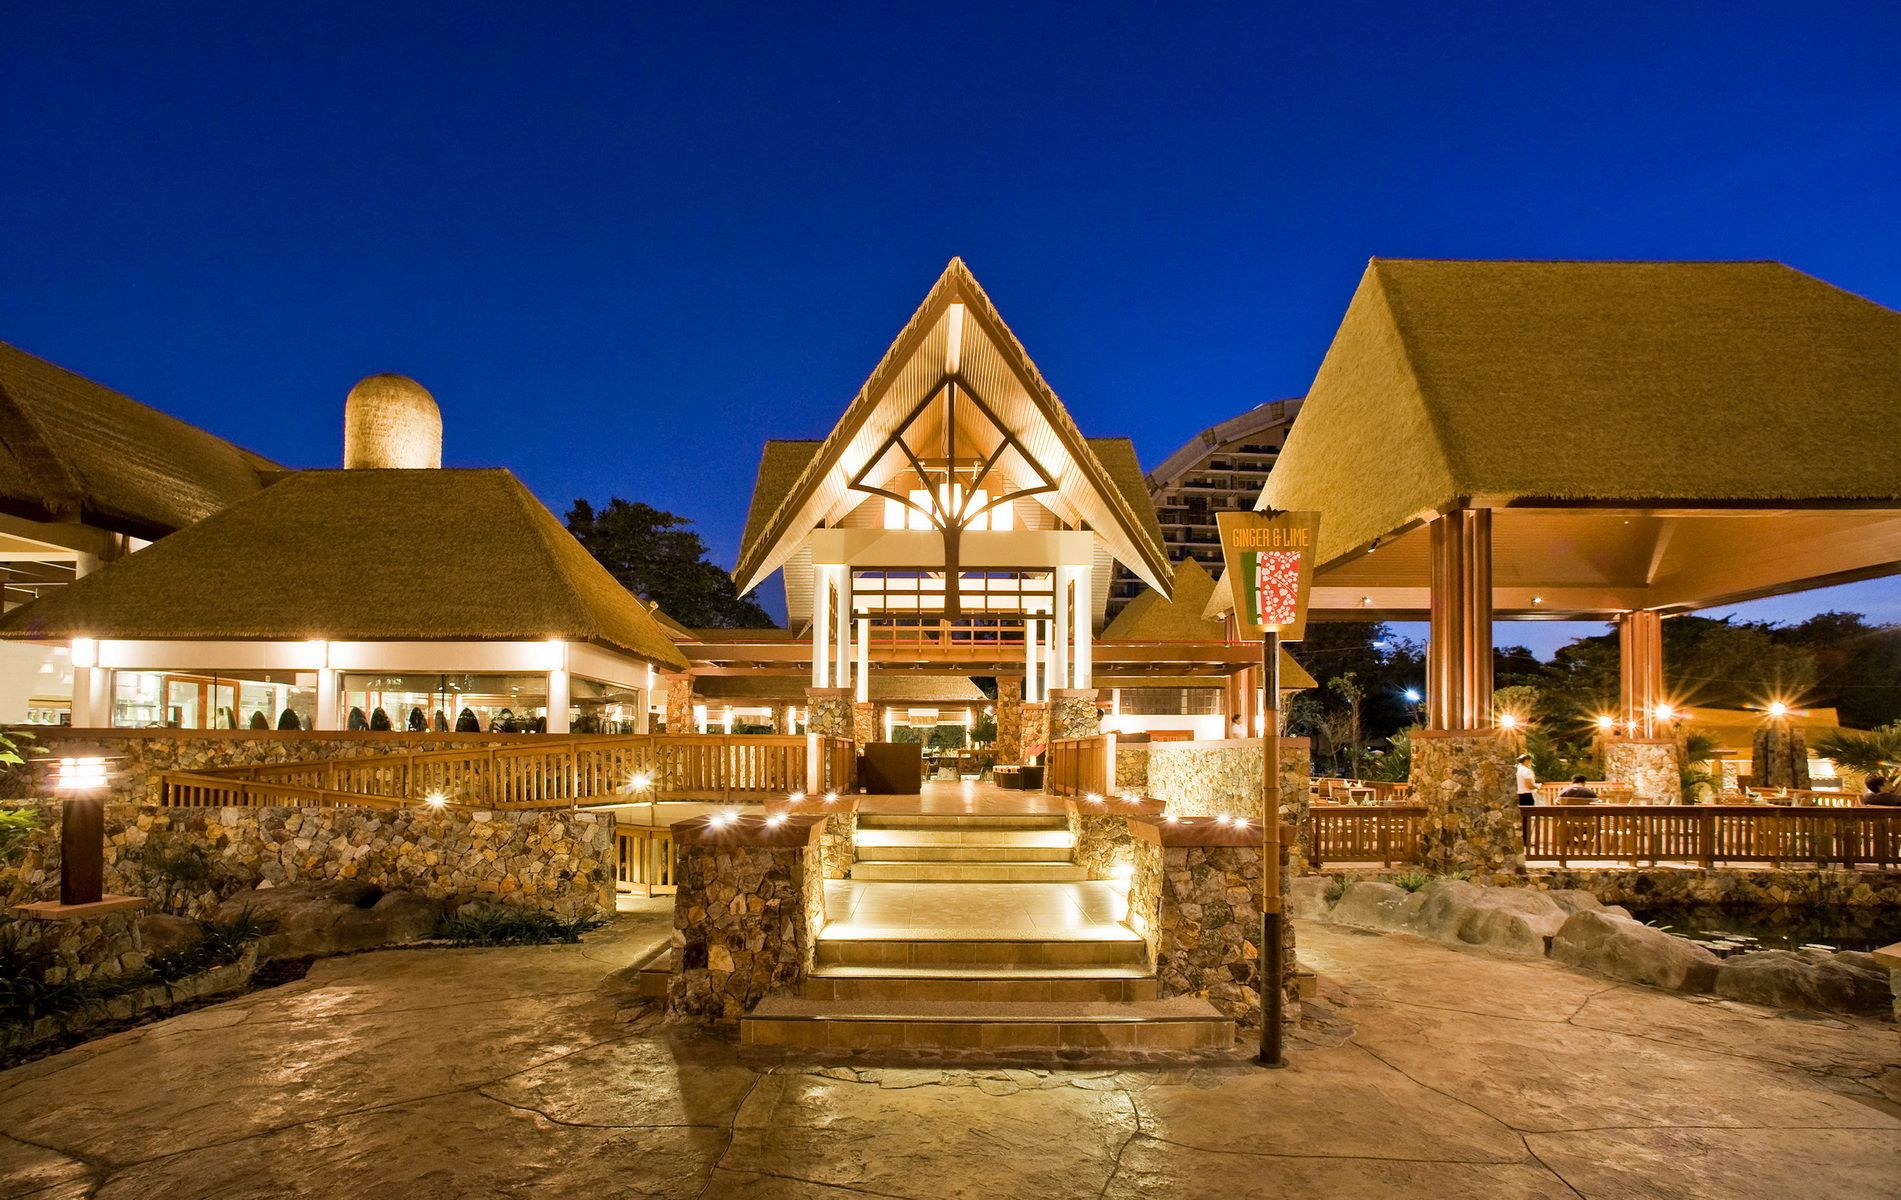 Centara Grand Mirage Beach Resort Pattaya On The Restaurant Winning The Thai Select Award Premium Grade Given By The Thai Government Following Anonymous Inspec